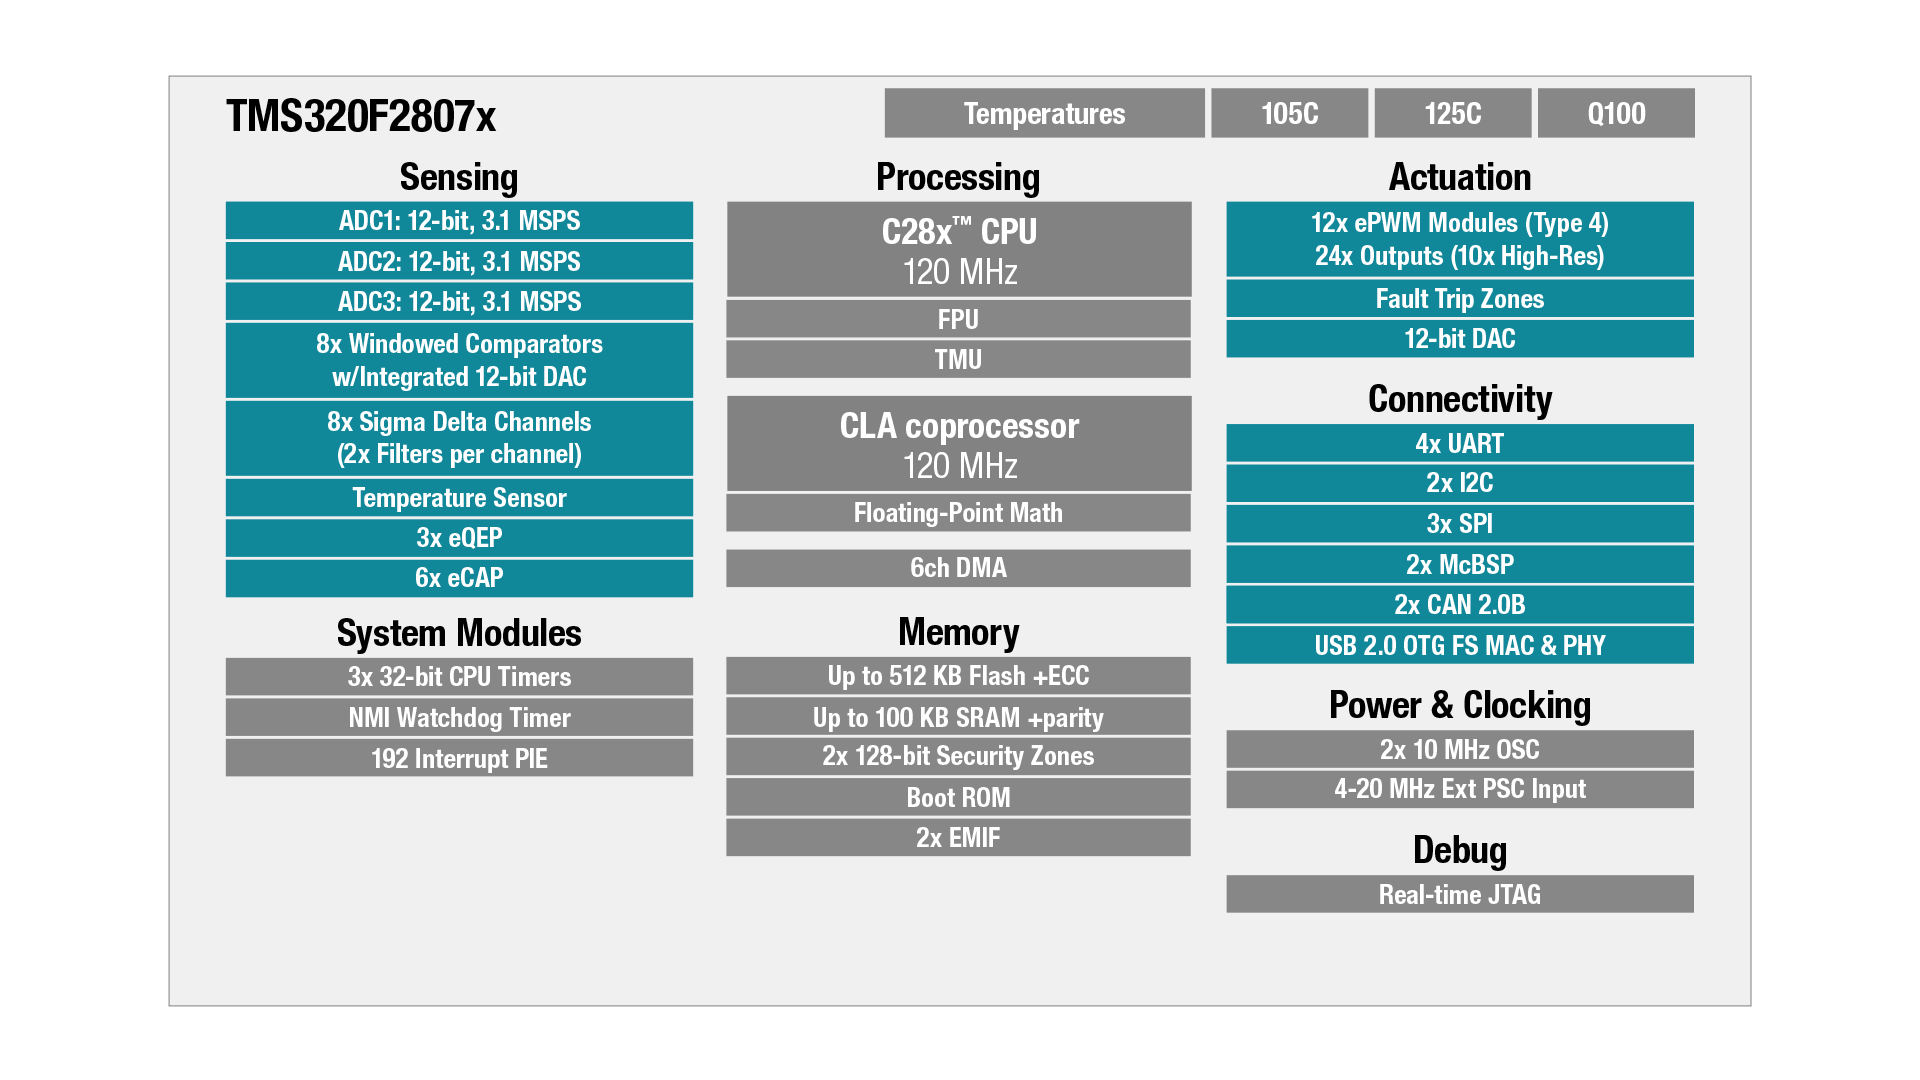 TMS320F2807x block diagram